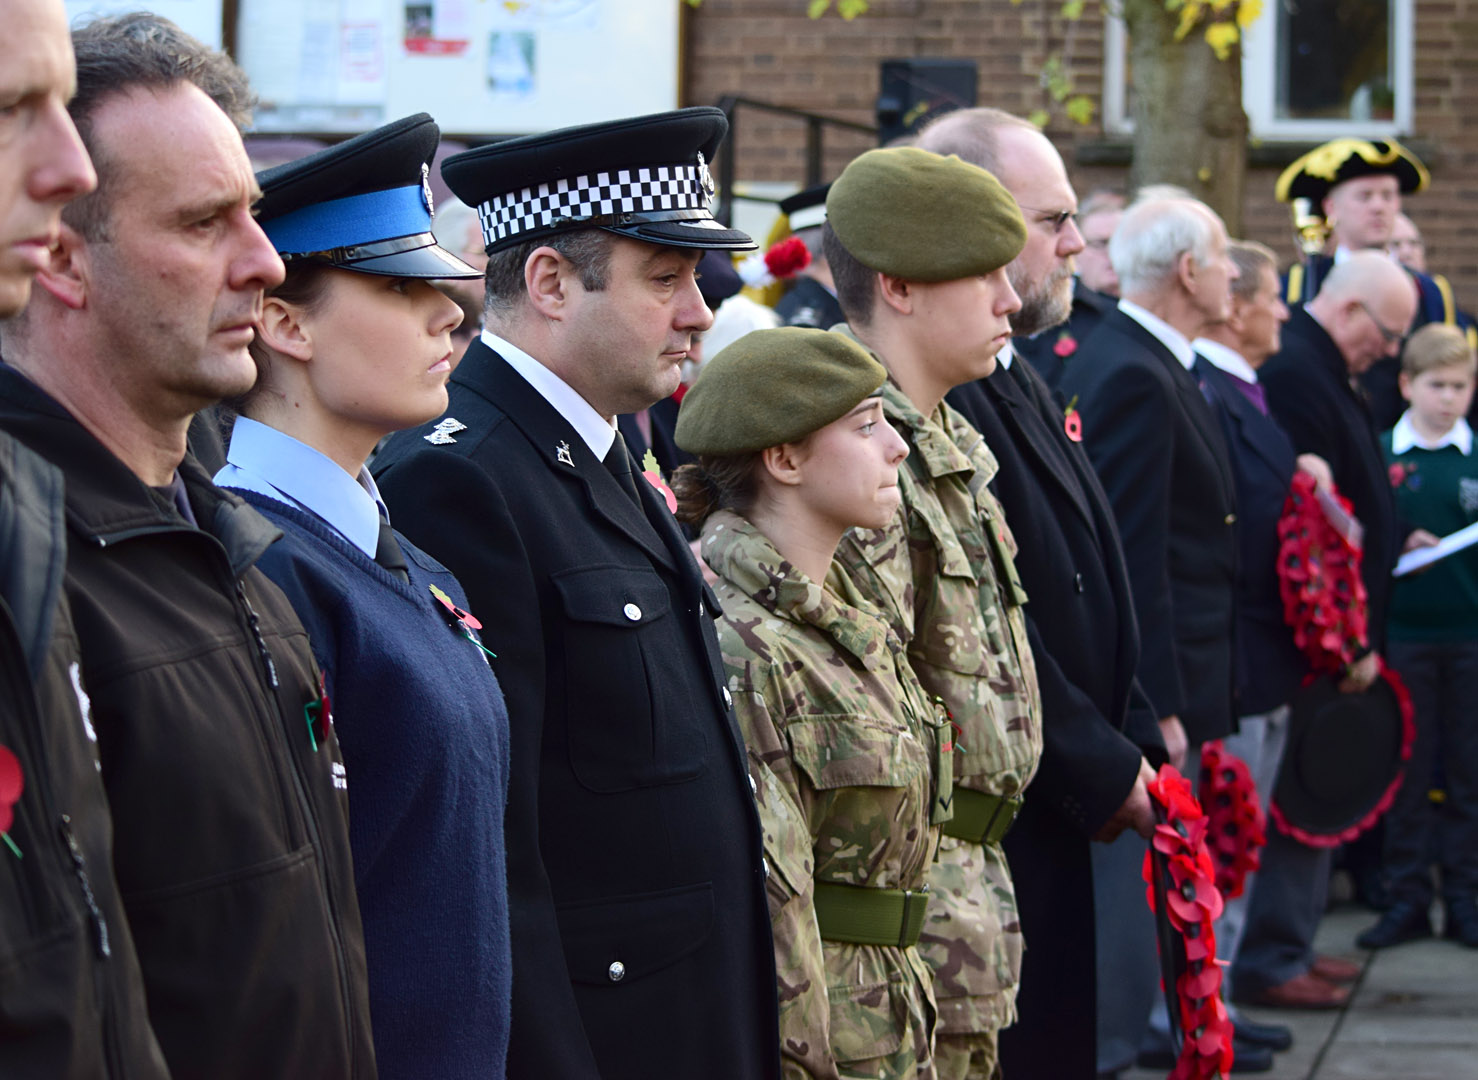 Mayor and Chairman to lead Remembrance Sunday service